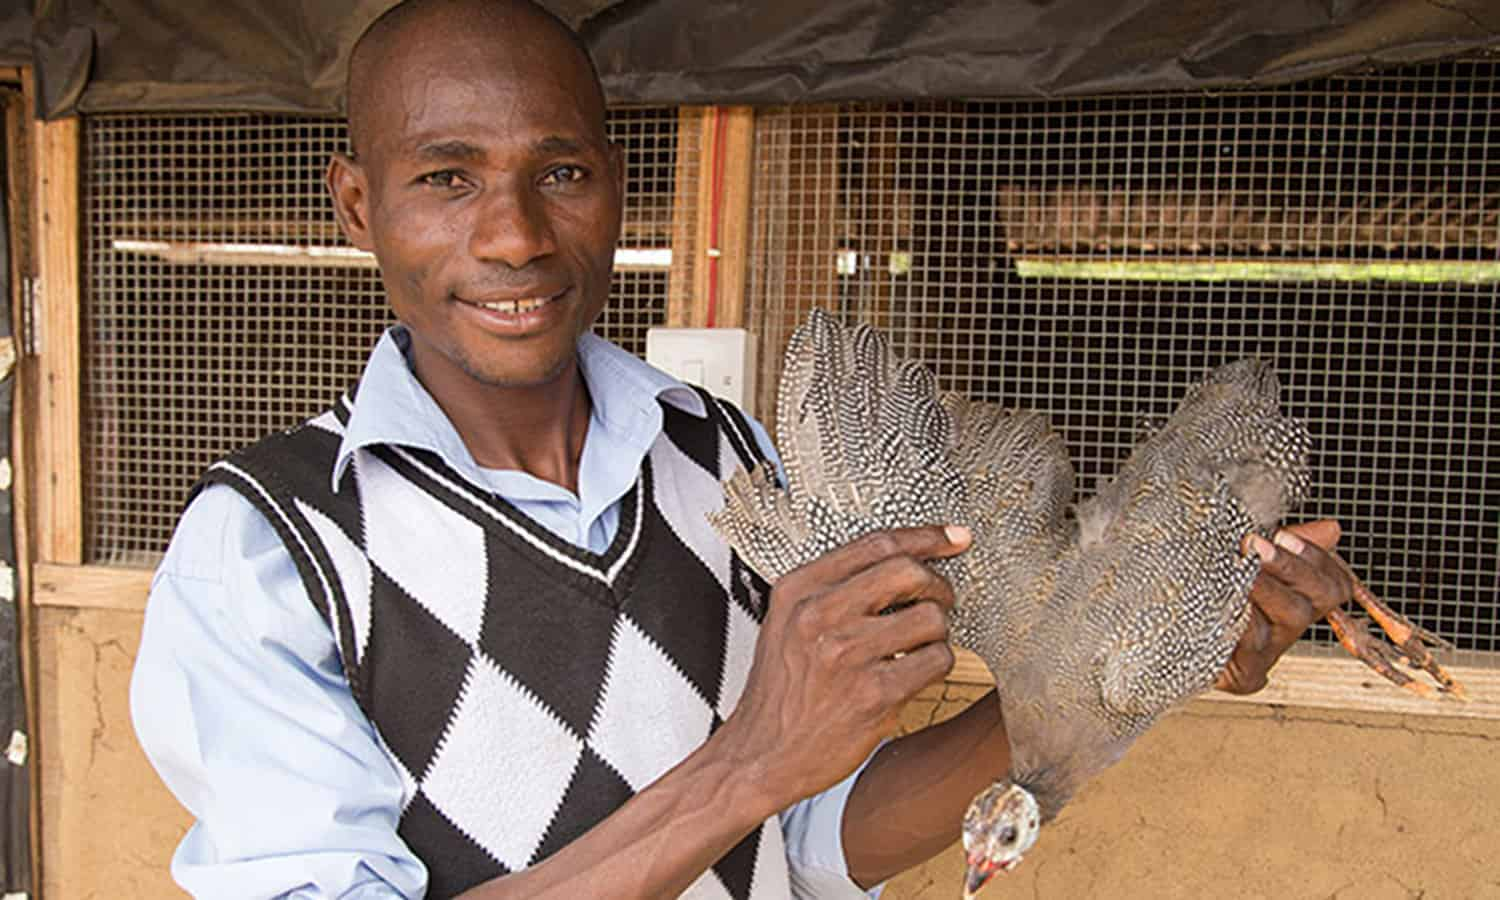 The Red Goat of Maradi and guinea fowl are improving the lives of family farmers and the poor in West Africa by providing better nutrition and job opportunities